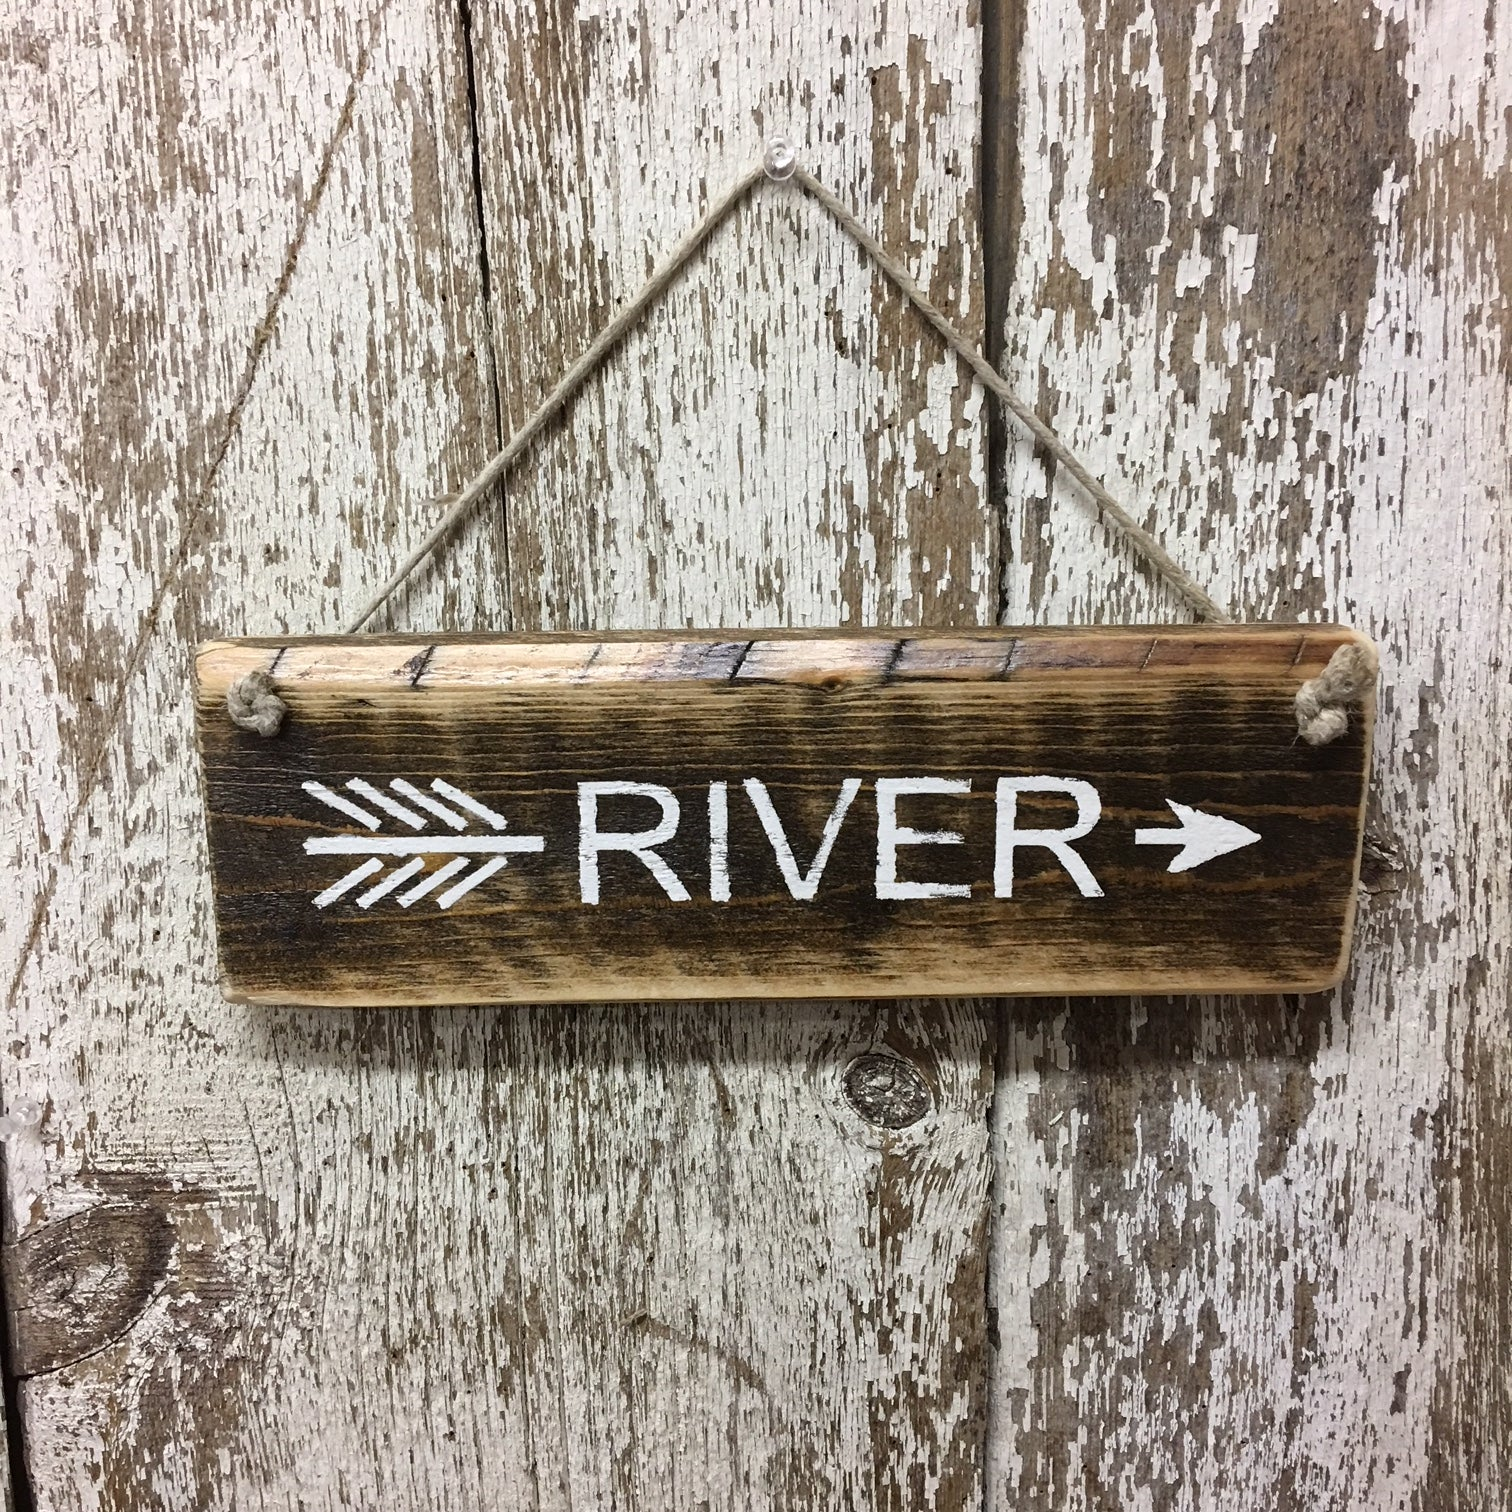 river life river arrow sign hand painted reclaimed wooden signs